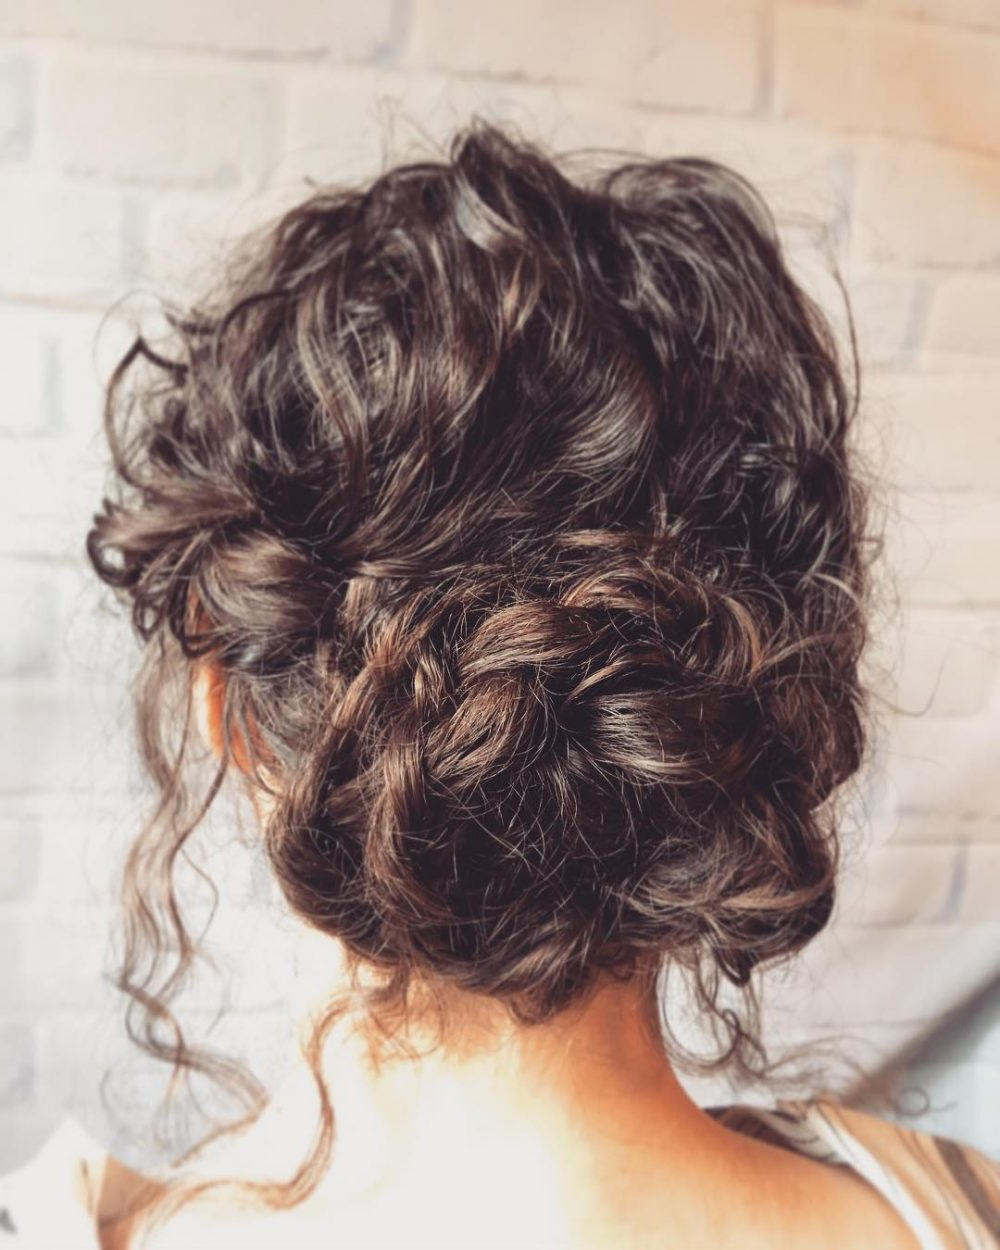 18 Stunning Curly Prom Hairstyles For 2019 – Updos, Down Do's & Braids! Throughout 2017 Easy Curled Prom Updos (Gallery 5 of 20)